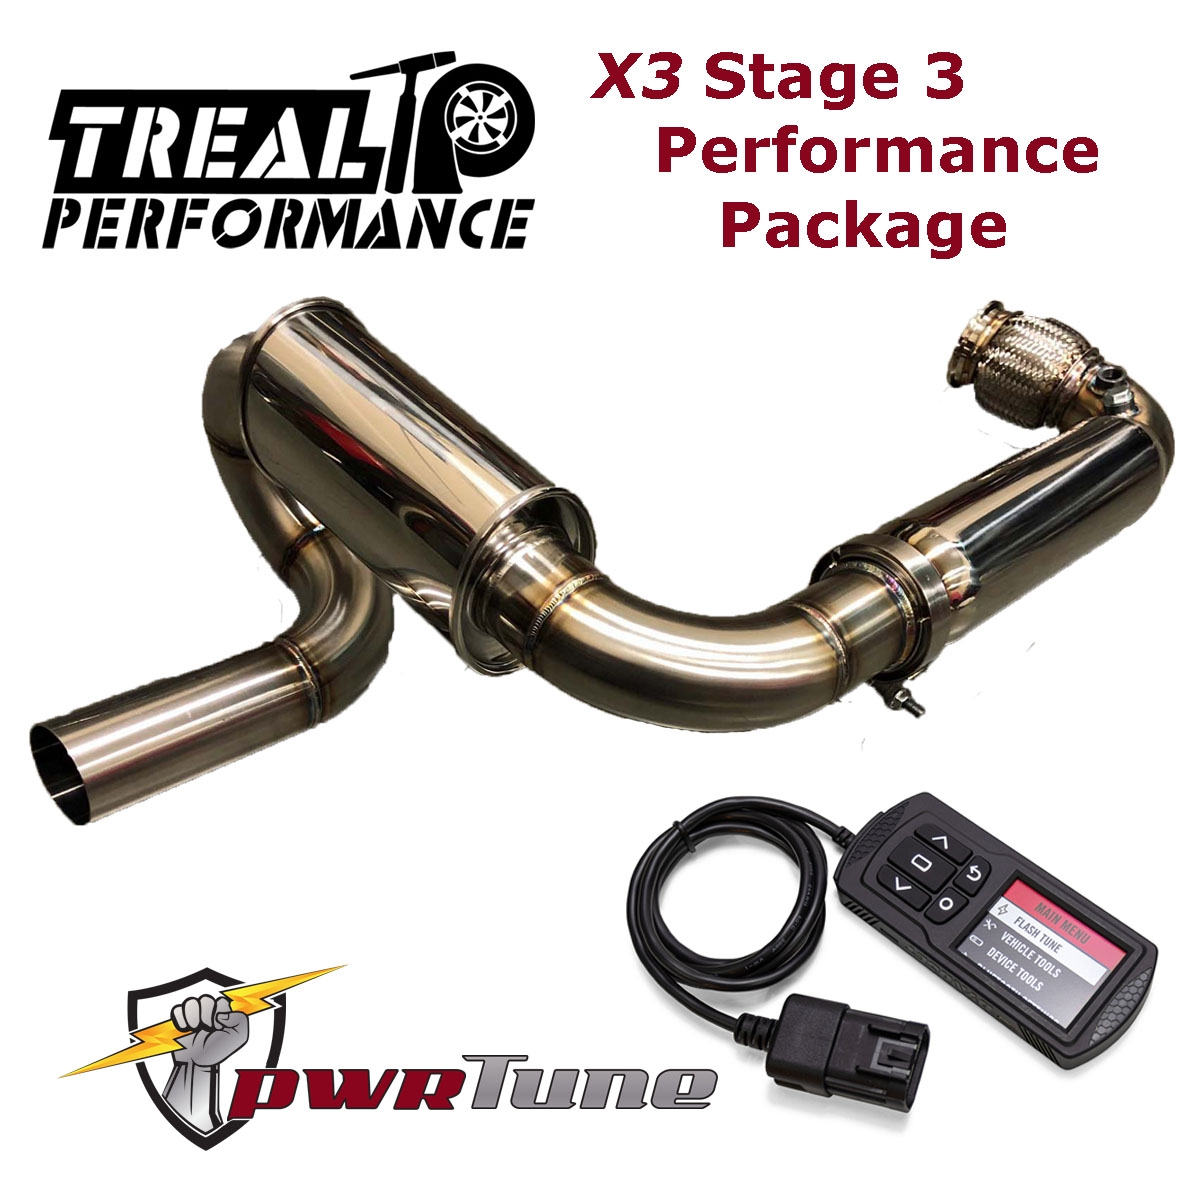 Treal Performance Exhaust X3 Stage 3 Package: Sport Full Exhaust